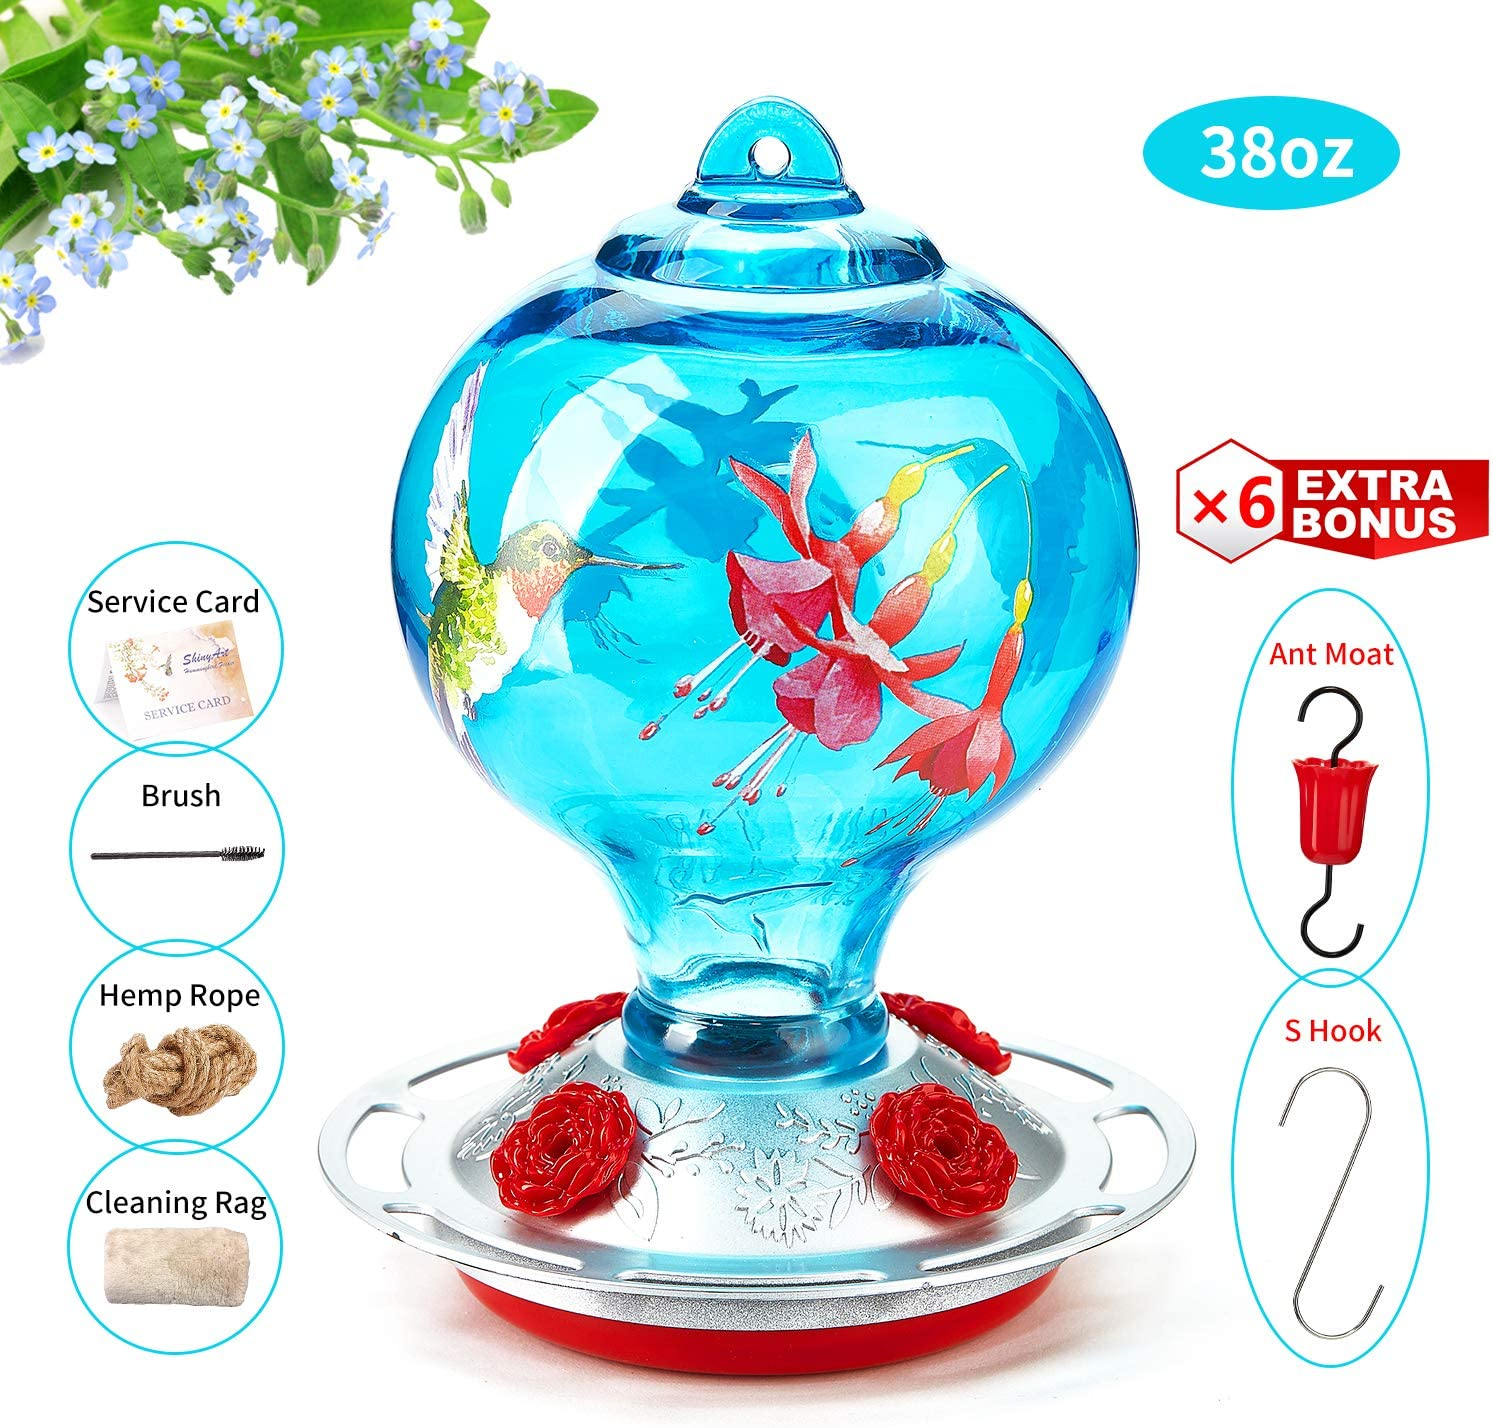 ShinyArt Hummingbird Feeder for Outdoors, 38 Ounces, Blue Birds and Floral, Including Ant Moat, S Hook, Hemp Rope, Brush, Cleaning Rag and Service Card